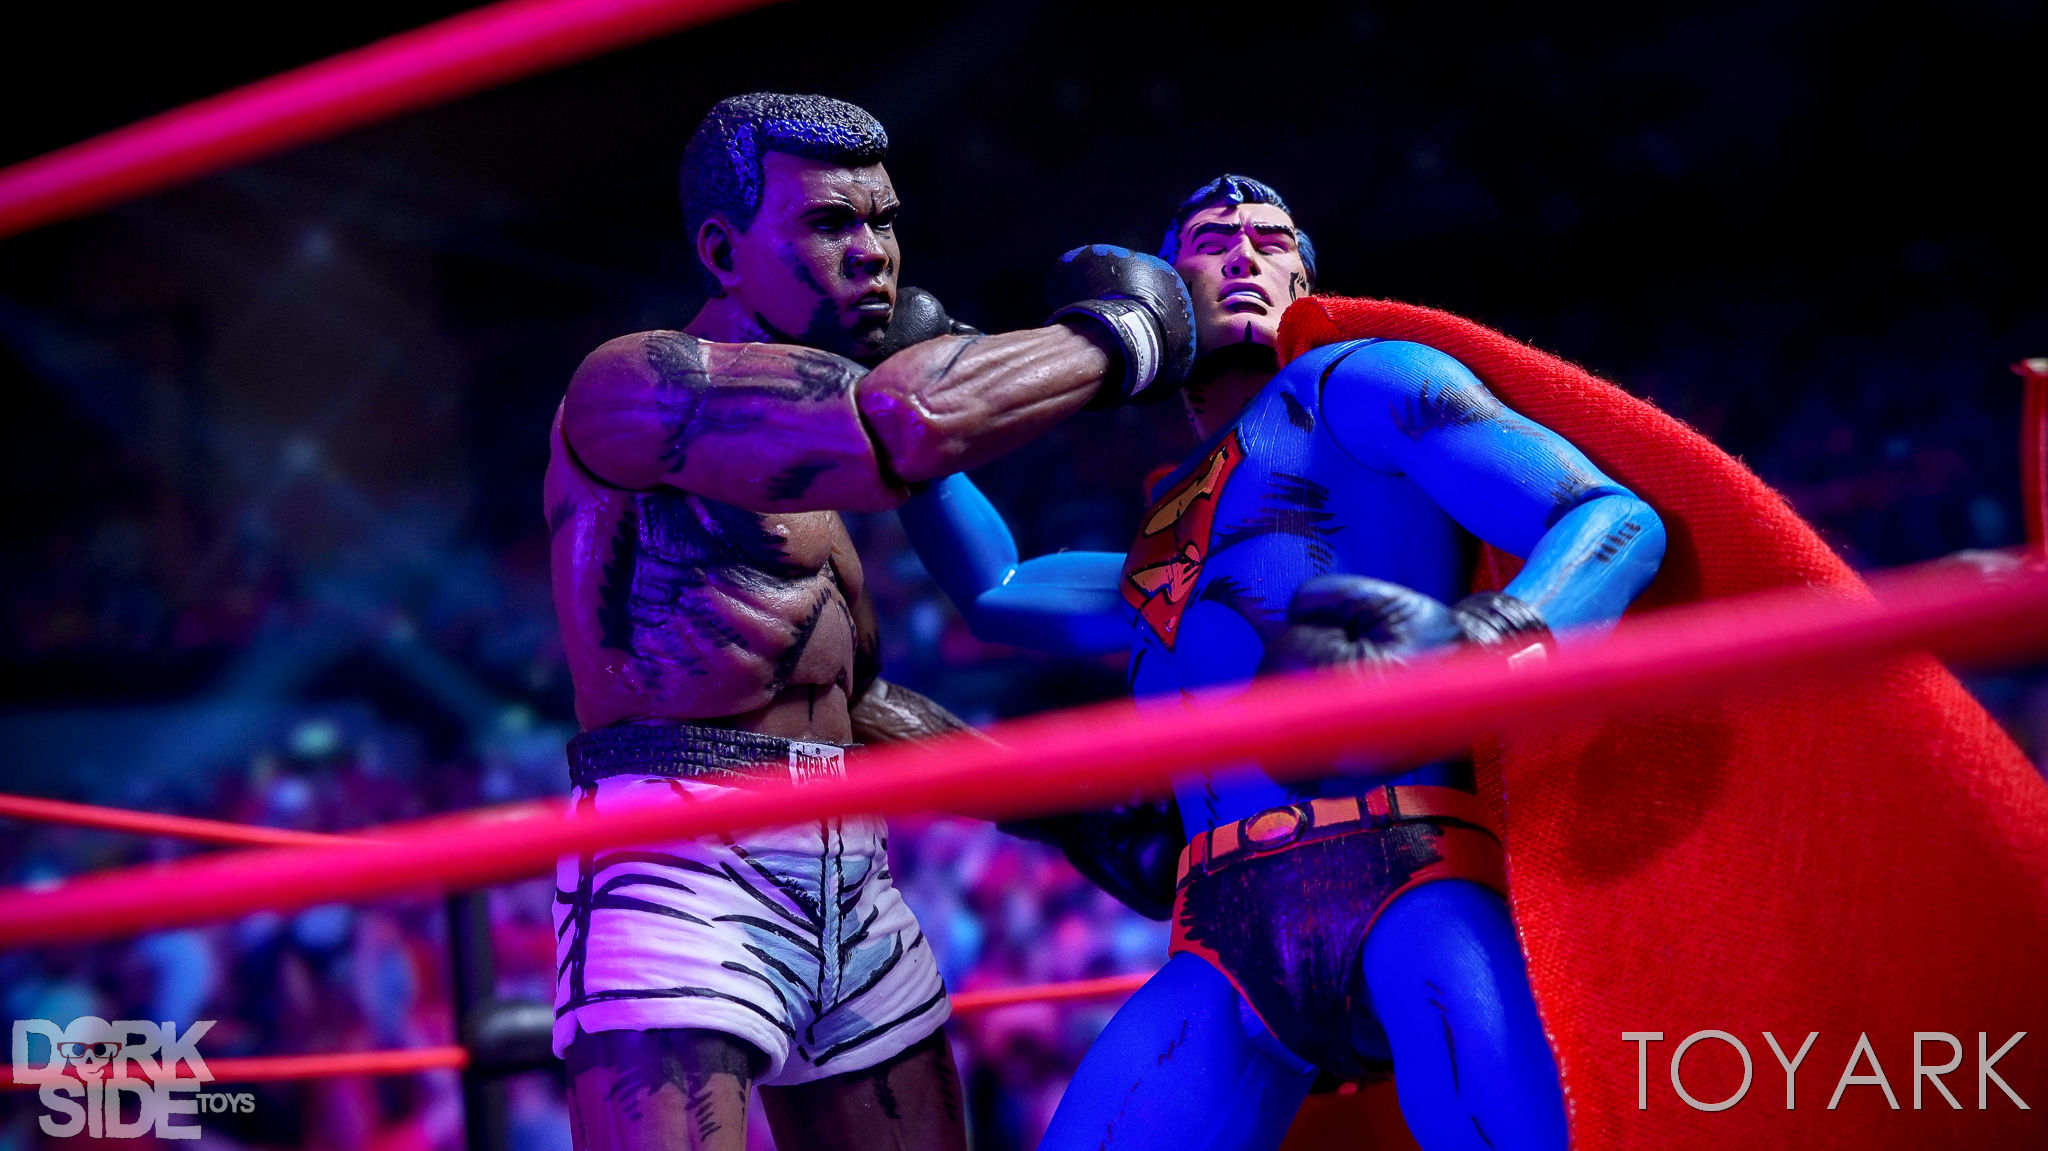 http://news.toyark.com/wp-content/uploads/sites/4/2017/02/NECA-Ali-vs-Superman-Set-033.jpg